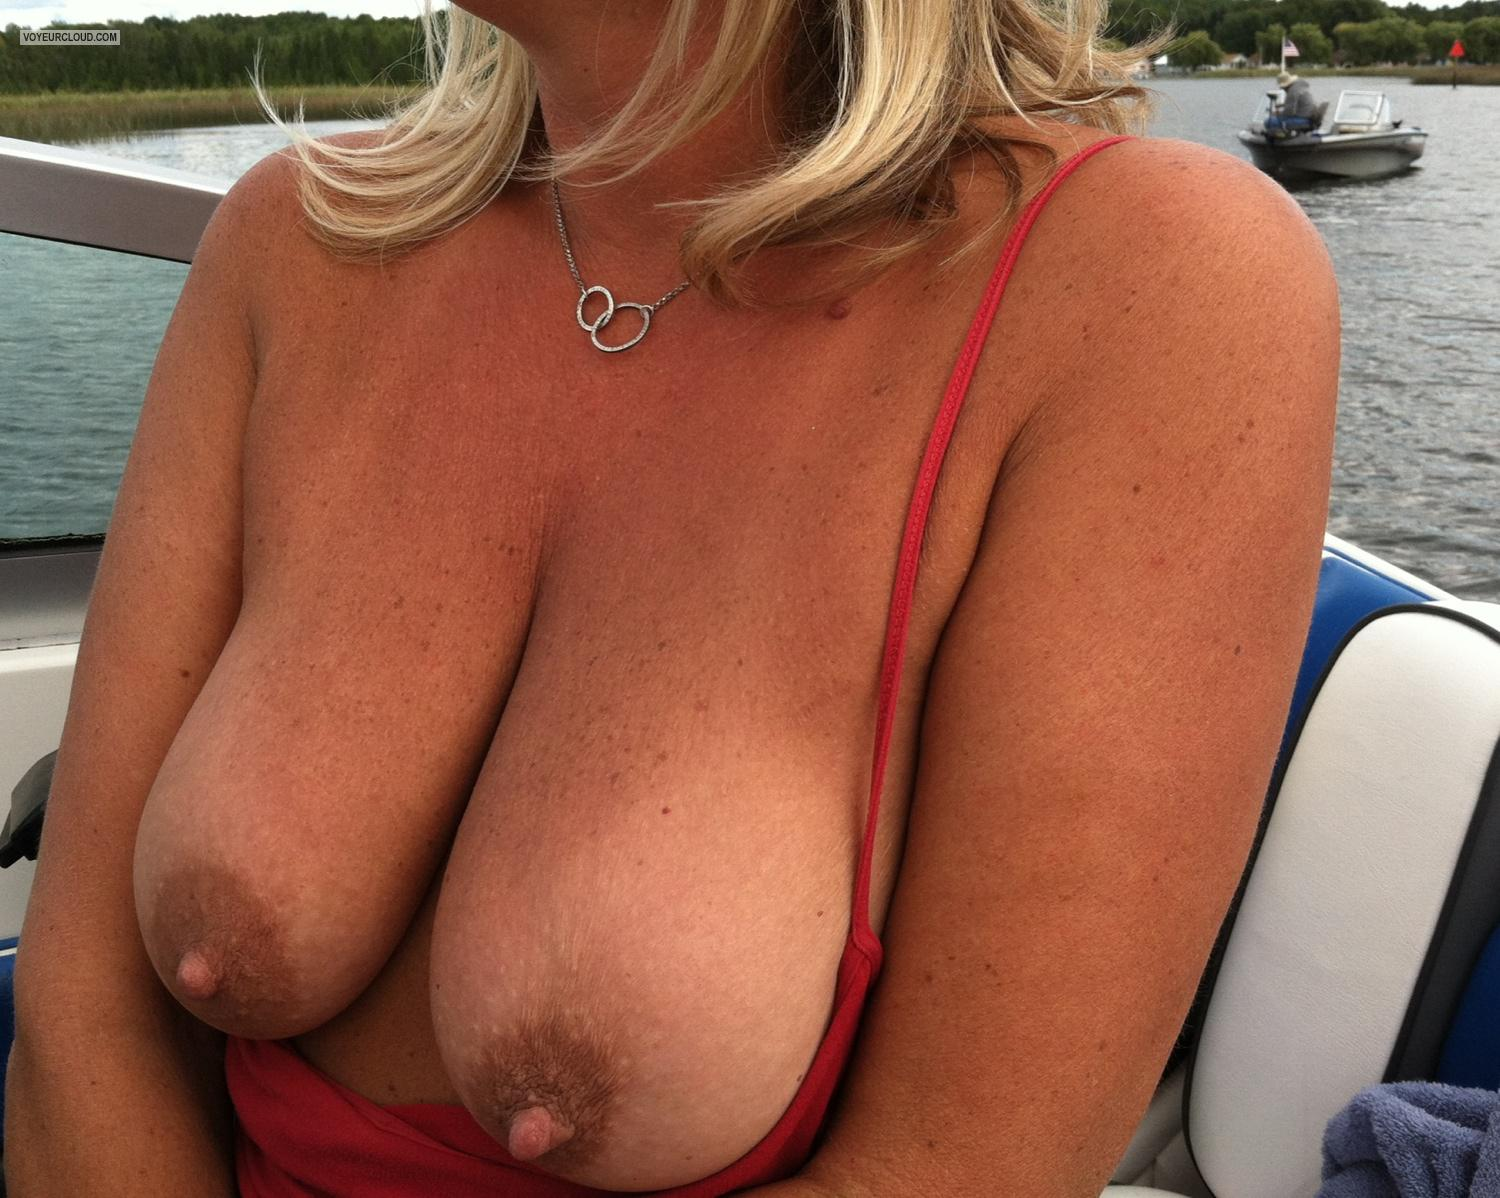 Tit Flash: Big Tits By IPhone - Boat Girlie from United States